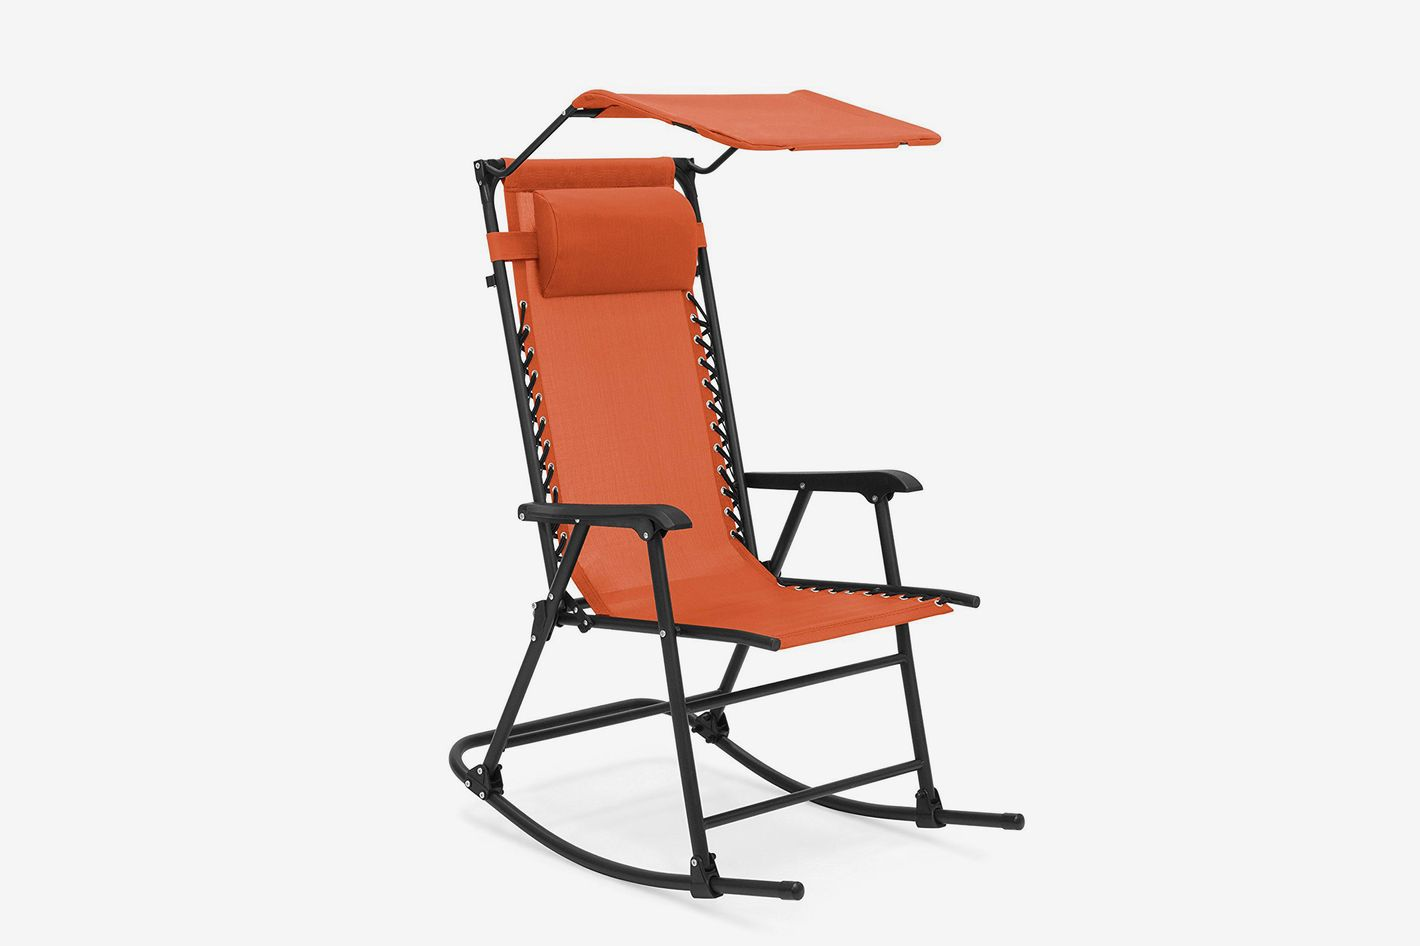 Best Choice Products Foldable Zero Gravity Rocking Patio Recliner Chair With Sunshade Canopy At